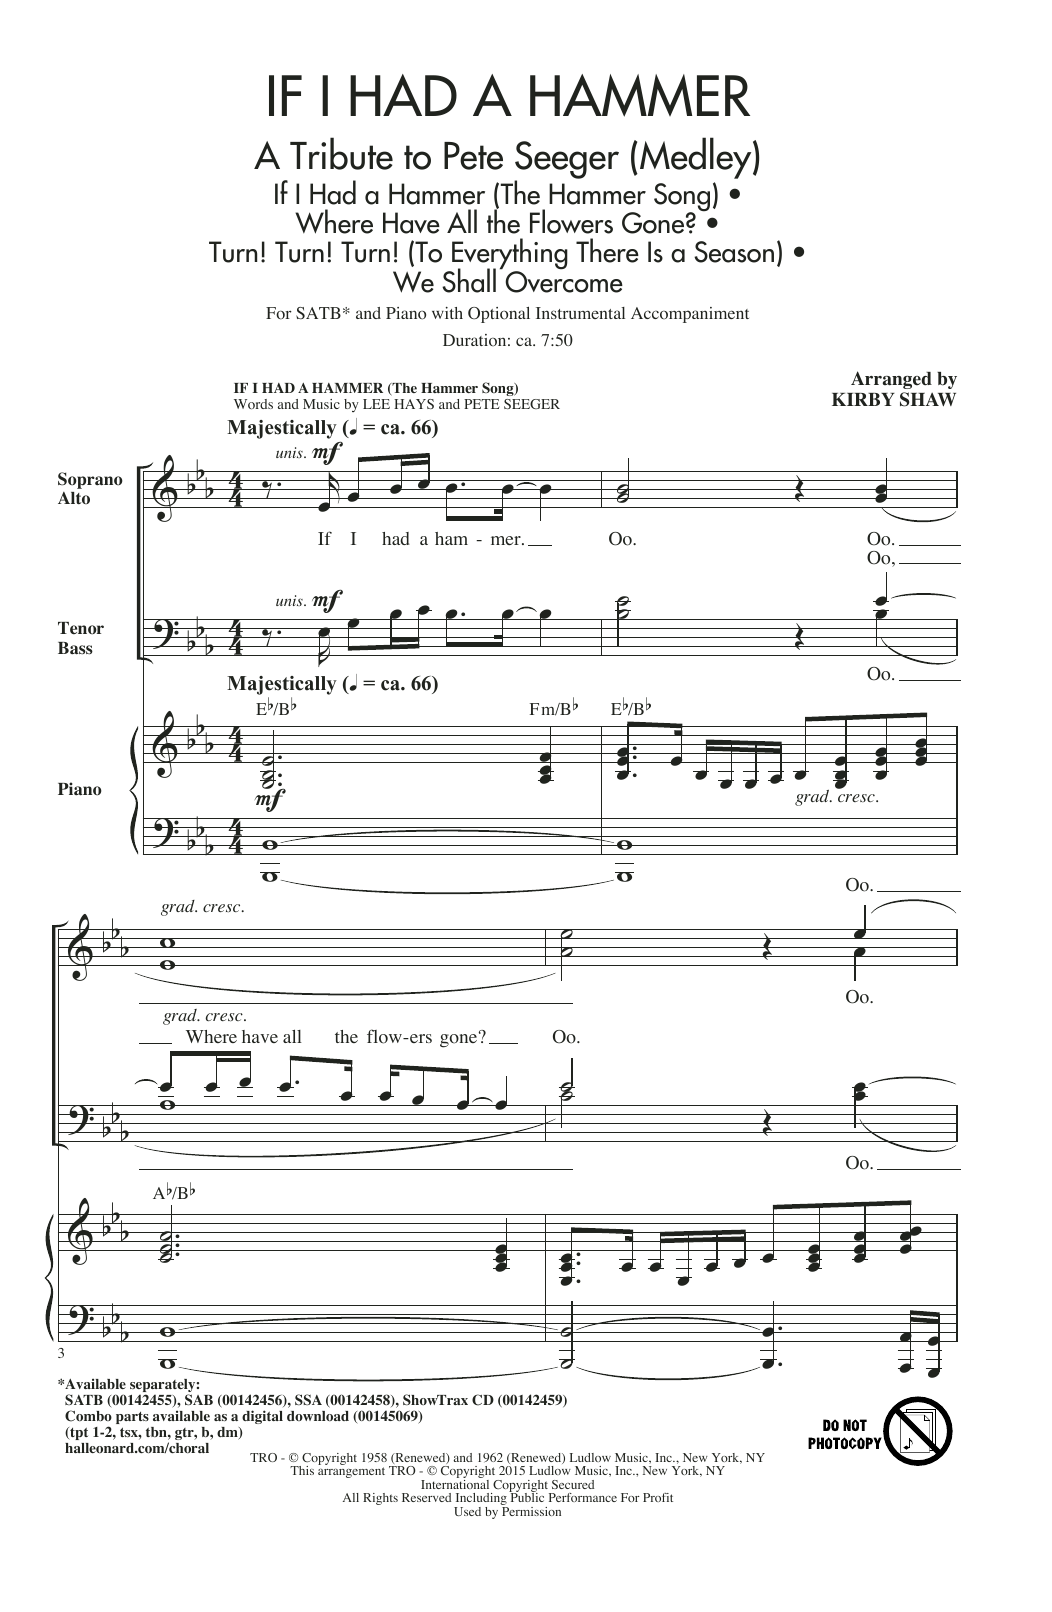 If i had a hammer (the hammer song) sheet music to download.